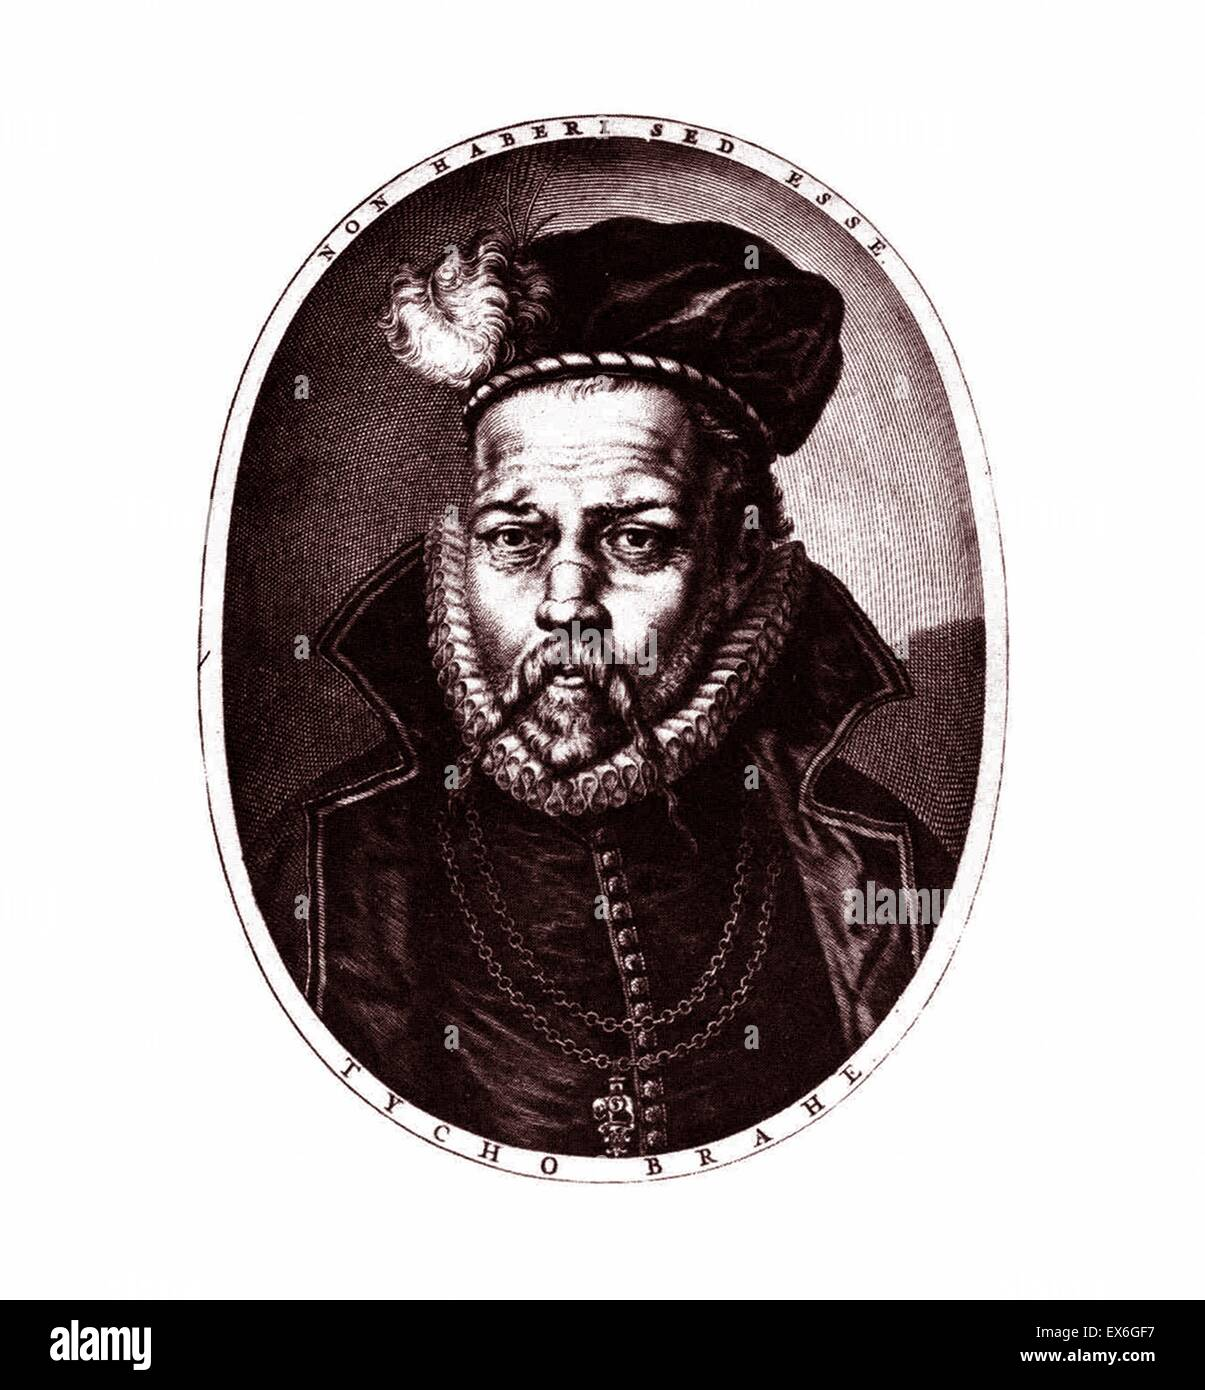 Portrait of Tycho Brahe (1546-1601) a Dnaish nobleman known for his accurate and comprehensive astronomical and - Stock Image